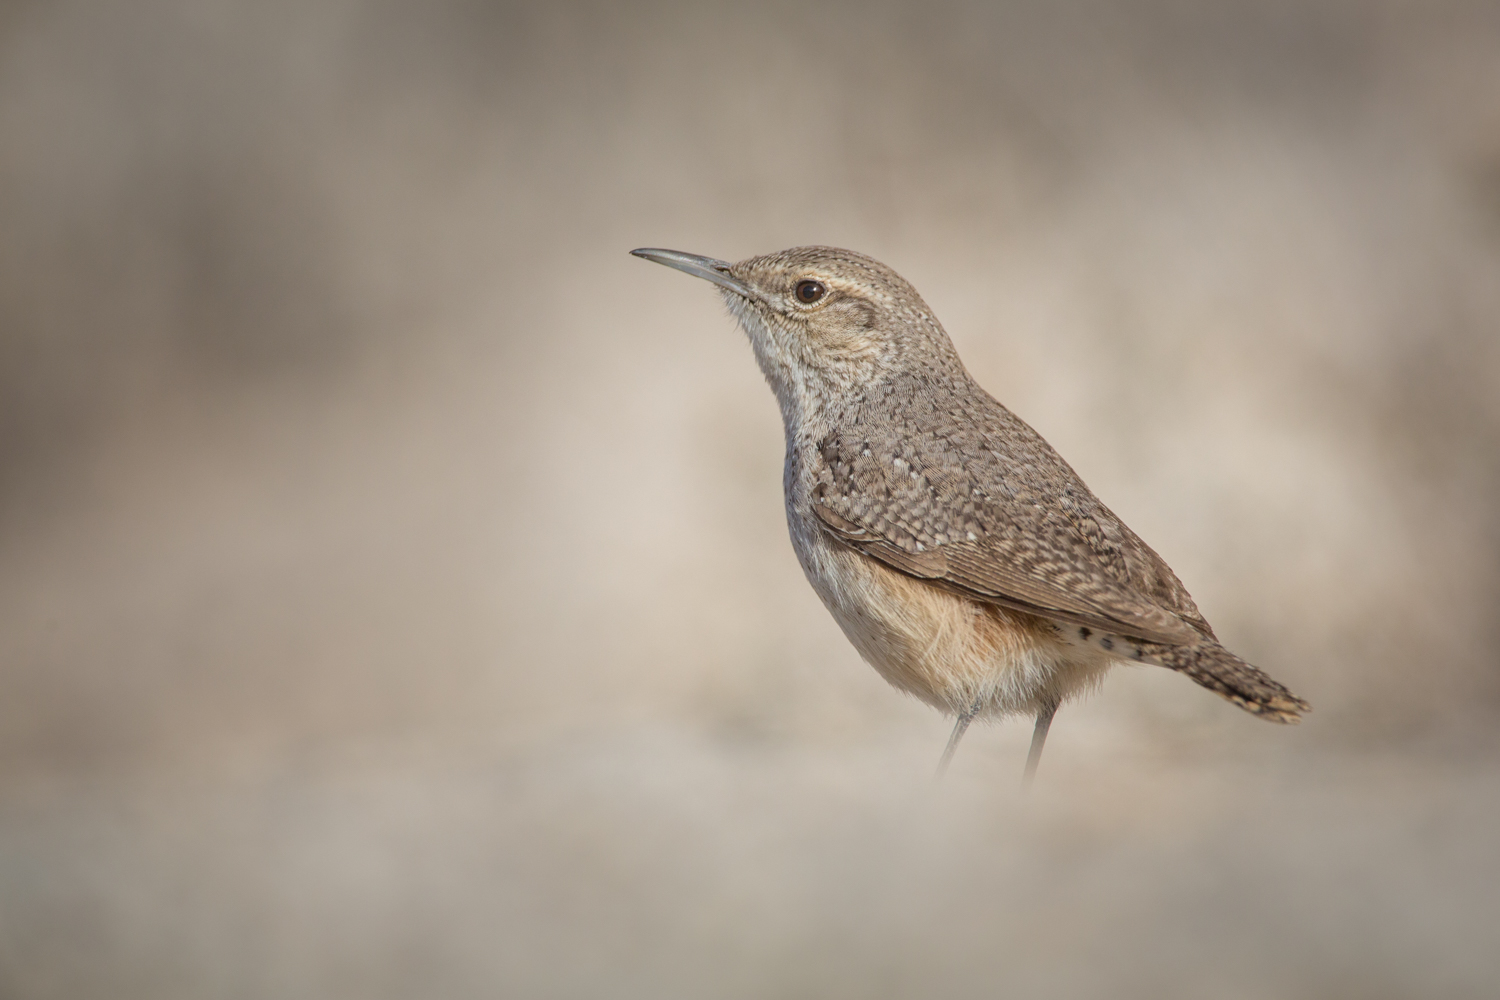 Review of the Olympus 300mm F4 PRO Lens - brown wren